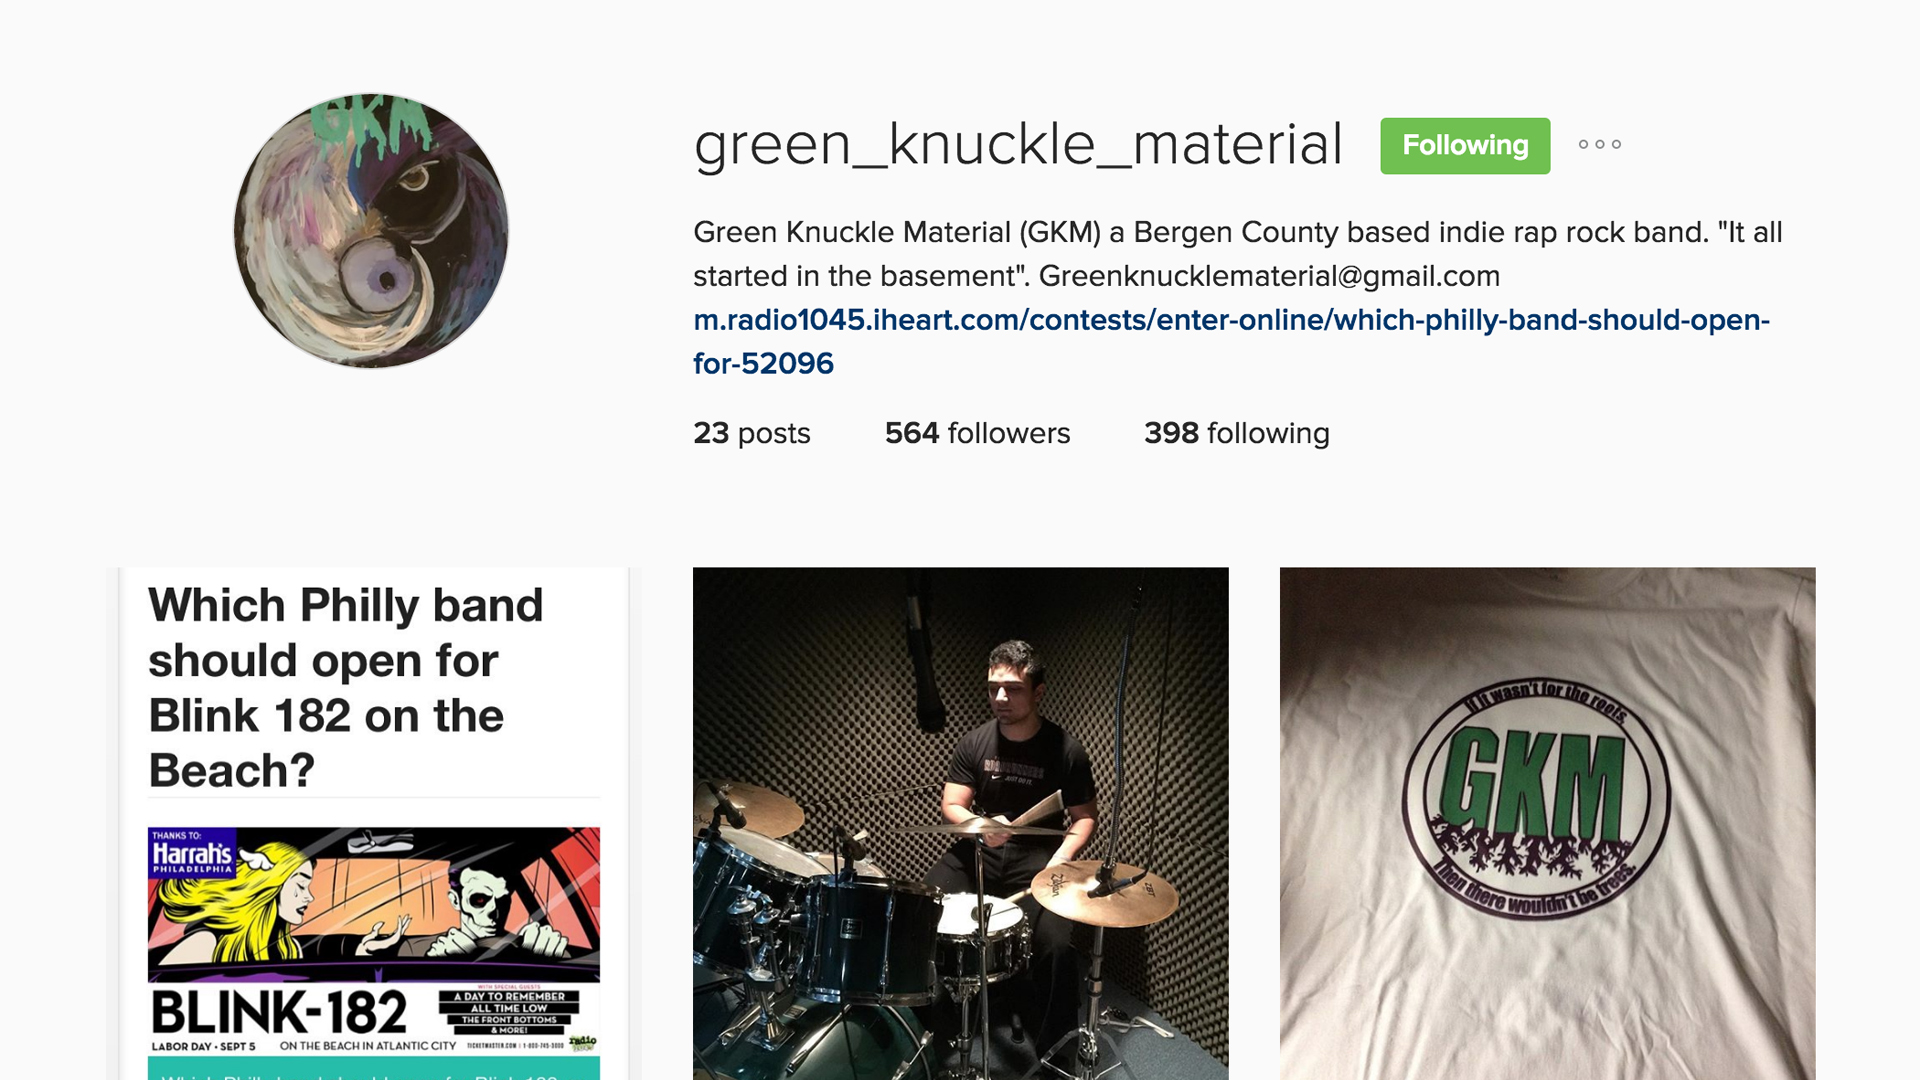 instagram.com/green_knuckle_material